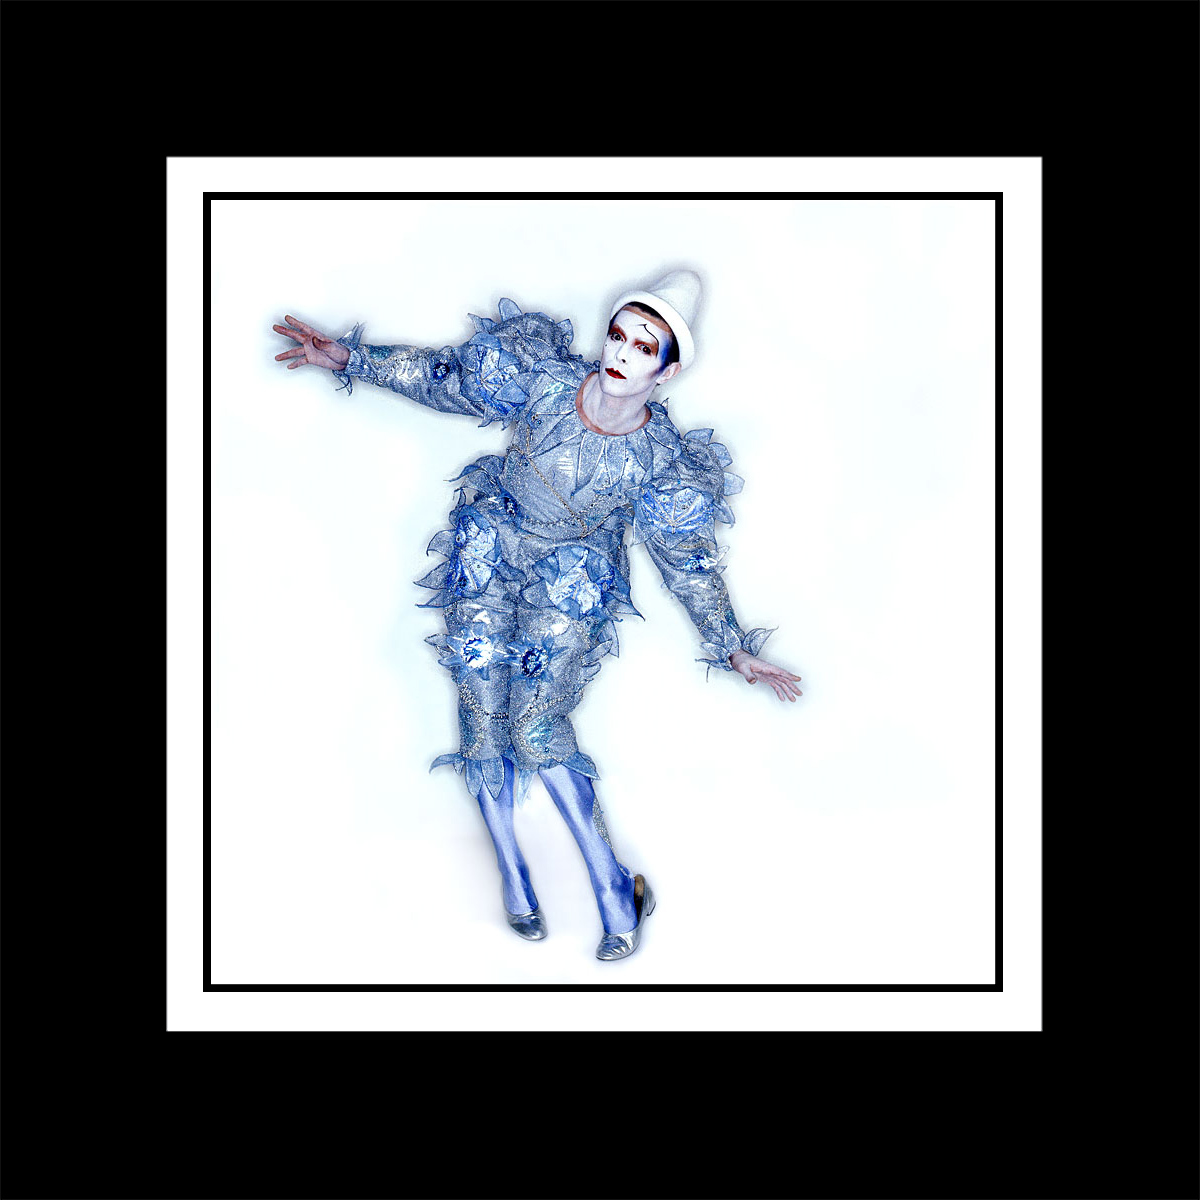 David Bowie Ashes to Ashes clown outfit print